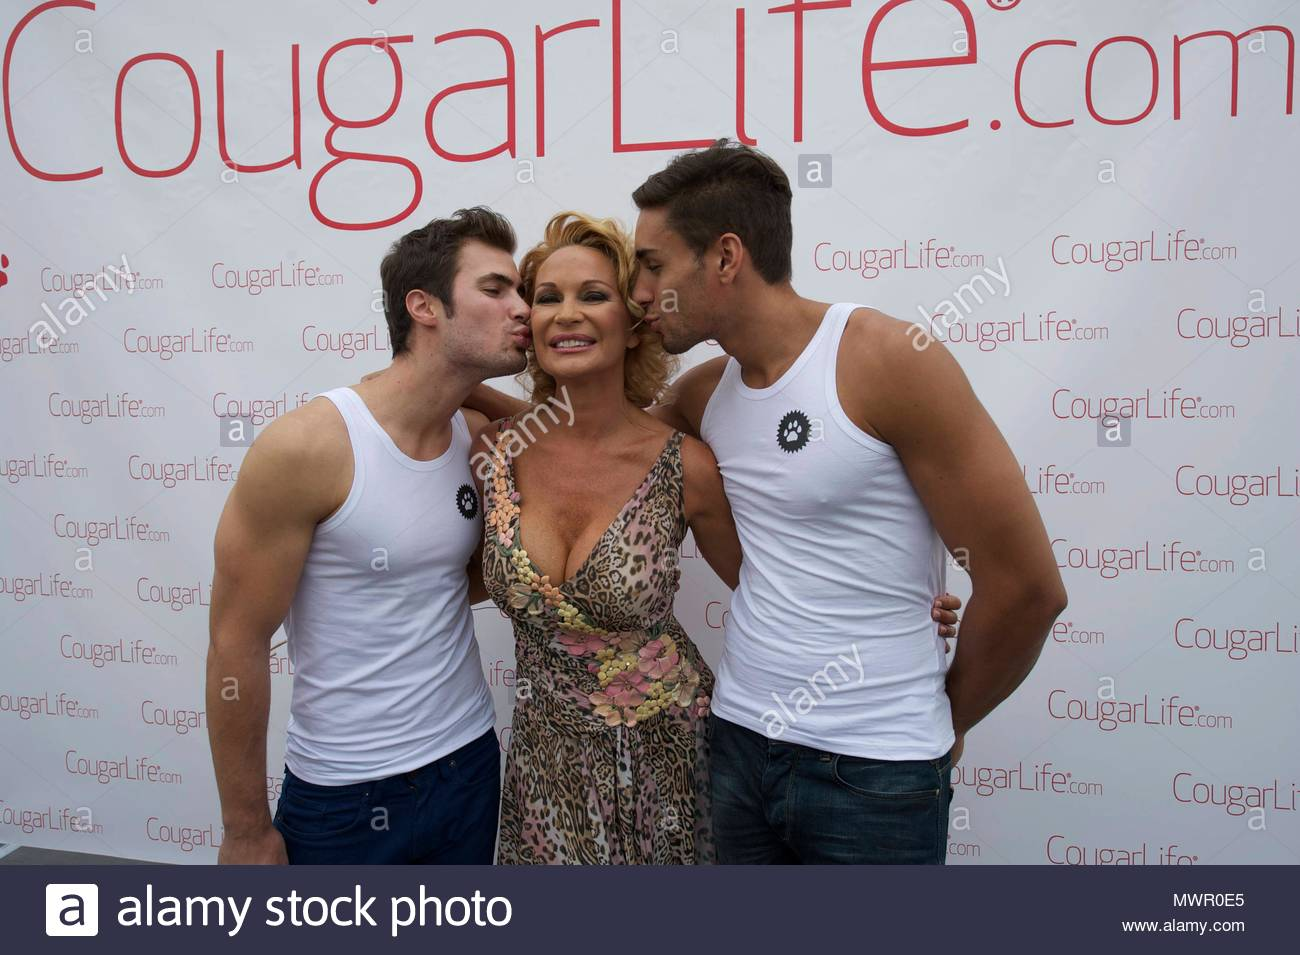 Cougar life password